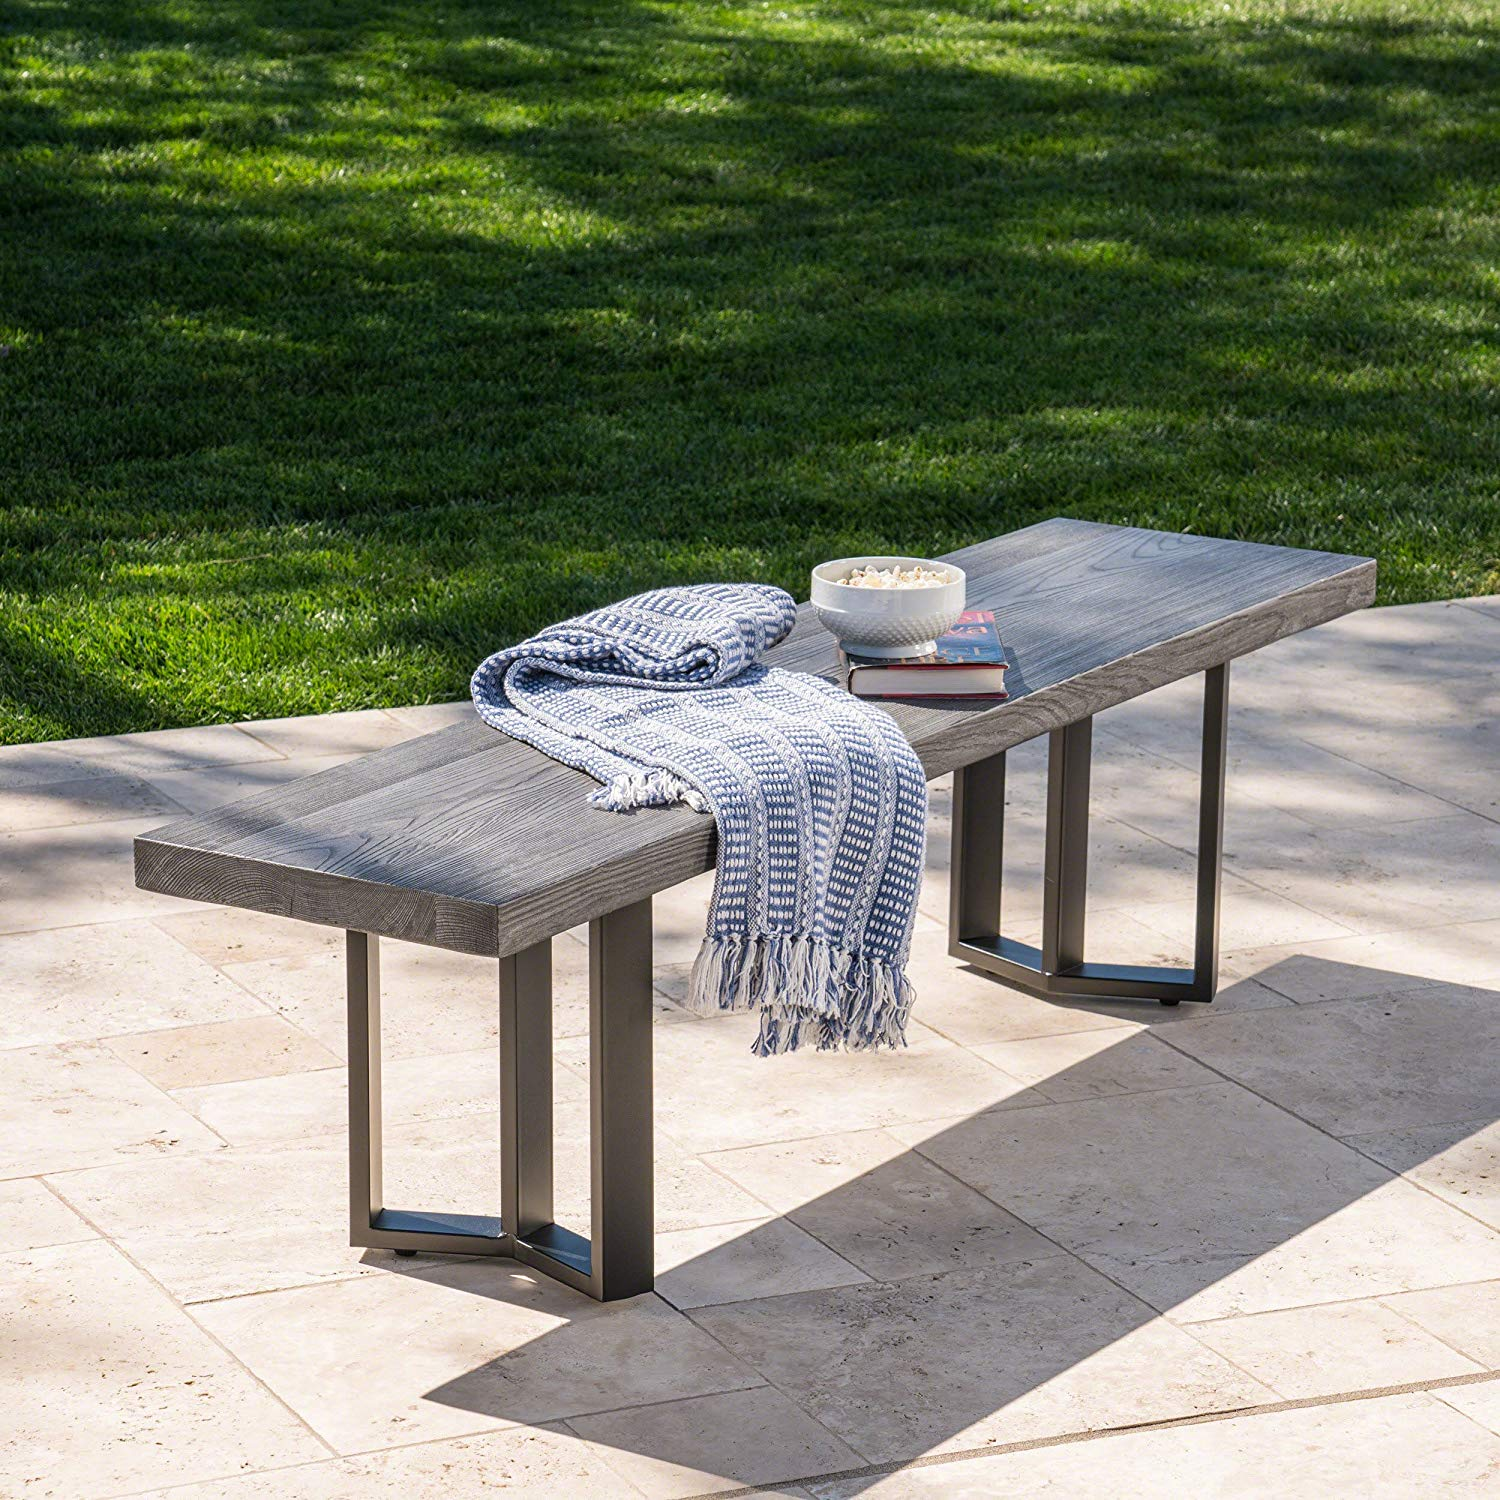 Another Beautiful Concrete And Metal Bench By Great Deal Furniture,